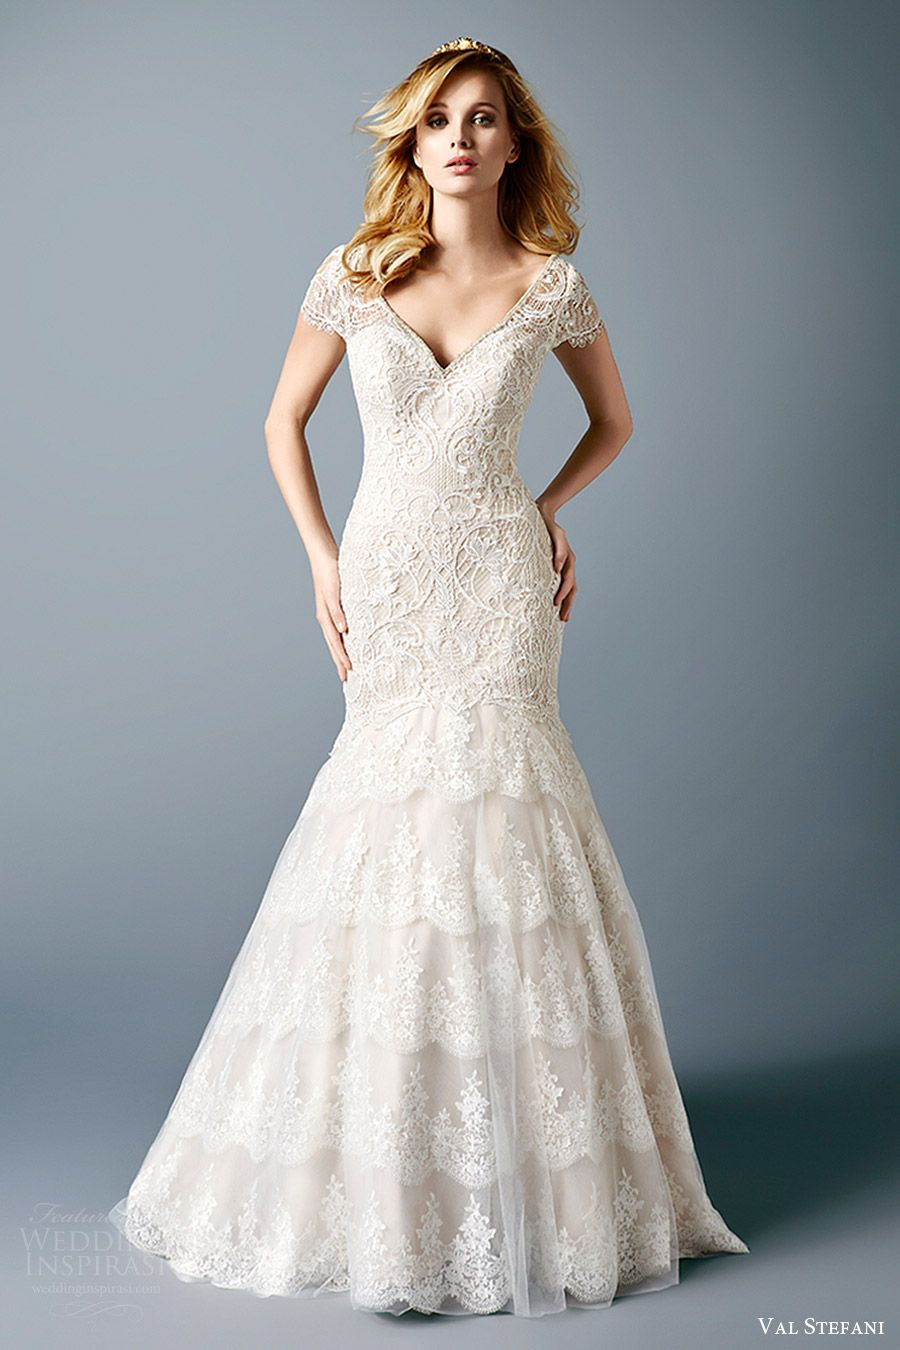 Val Stefani Fall 2016 Wedding Dresses — + Interview with Designers ...